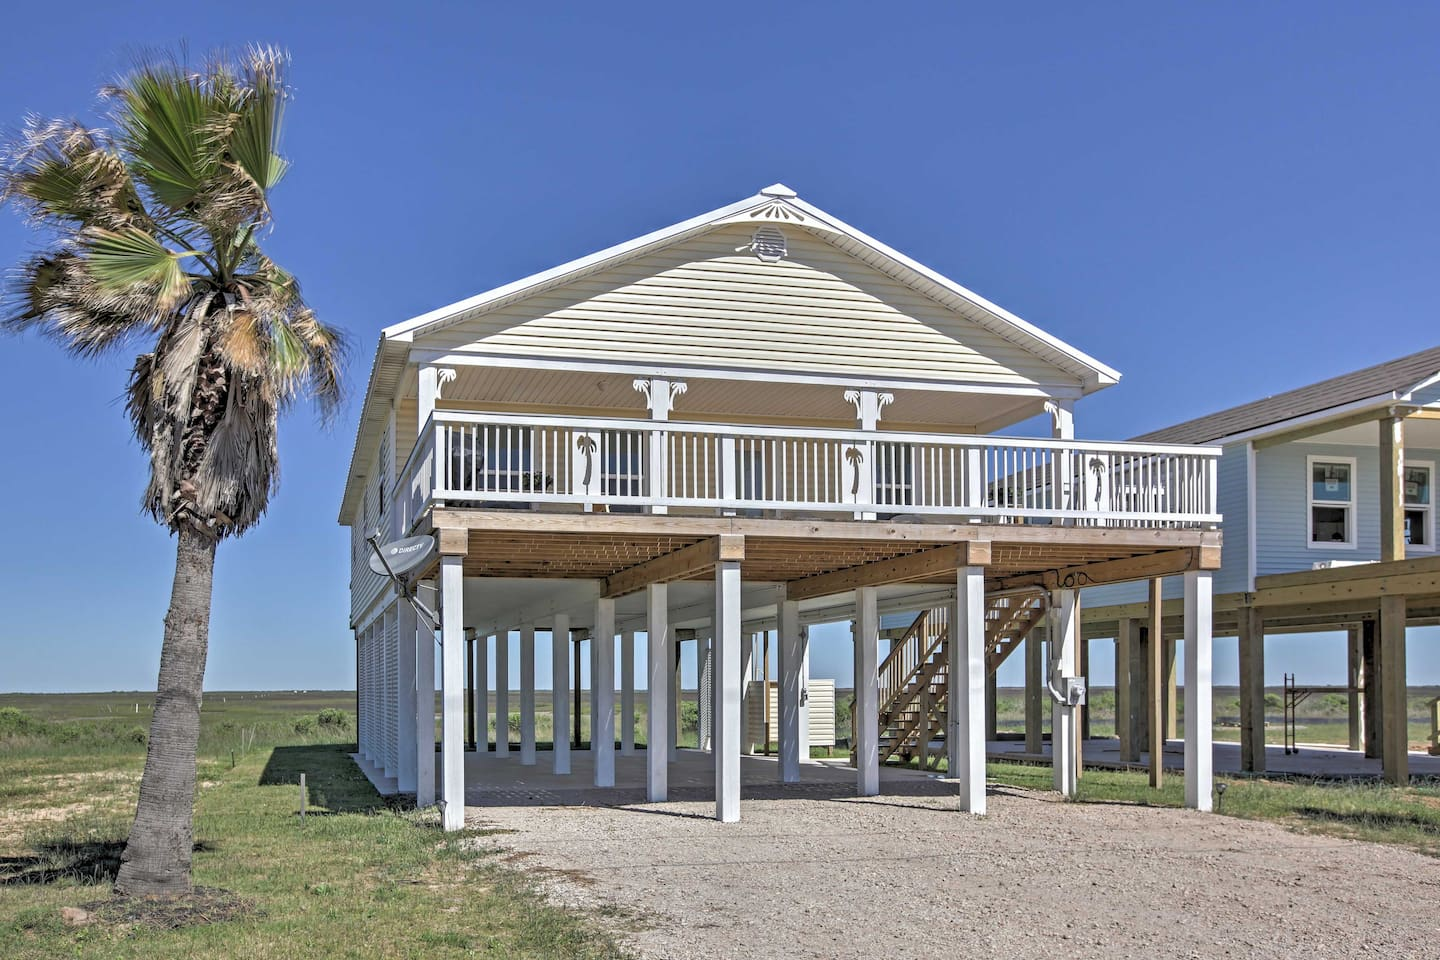 Escape to the beach in this 3-bedroom, 3-bath Surfside Beach vacation rental.